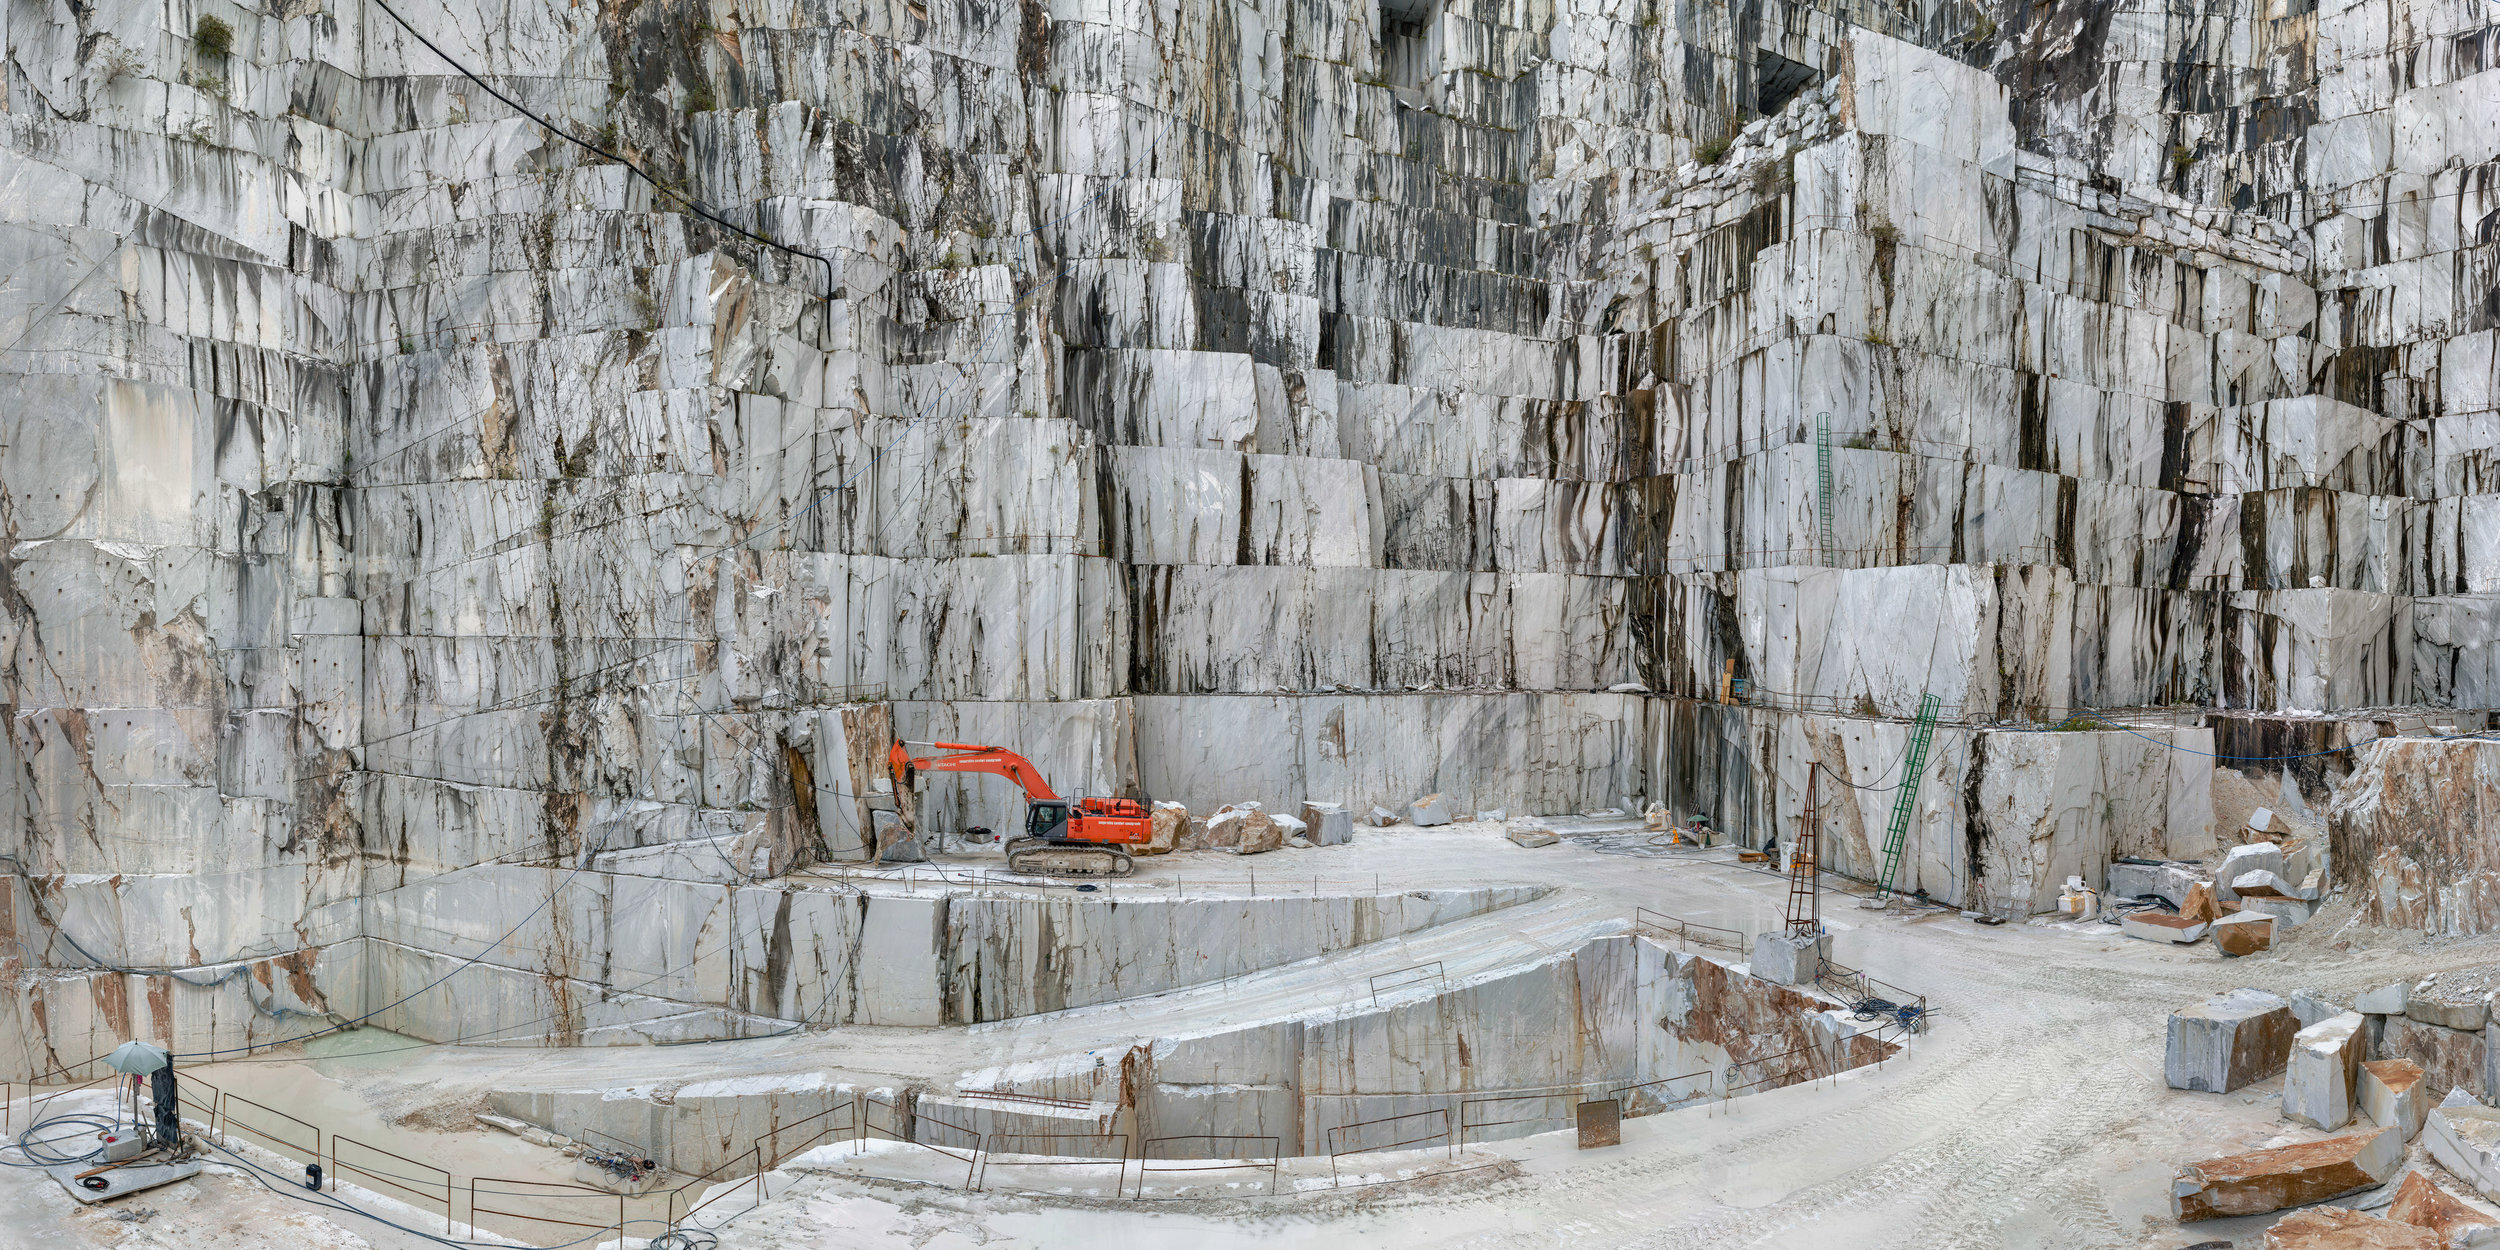 "A marble quarry in Carrera, Italy, where Michelangelo got his stone, is one of the workspaces seen in the documentary ""Anthropocene: The Human Epoch, by Jennifer Baichwal, Nicholas de Pencier, and Edward Burtynsky, an official selection in the Spotlight program of the 2019 Sundance Film Festival. (Photo by Edward Burtynsky, courtesy Sundance Institute)"